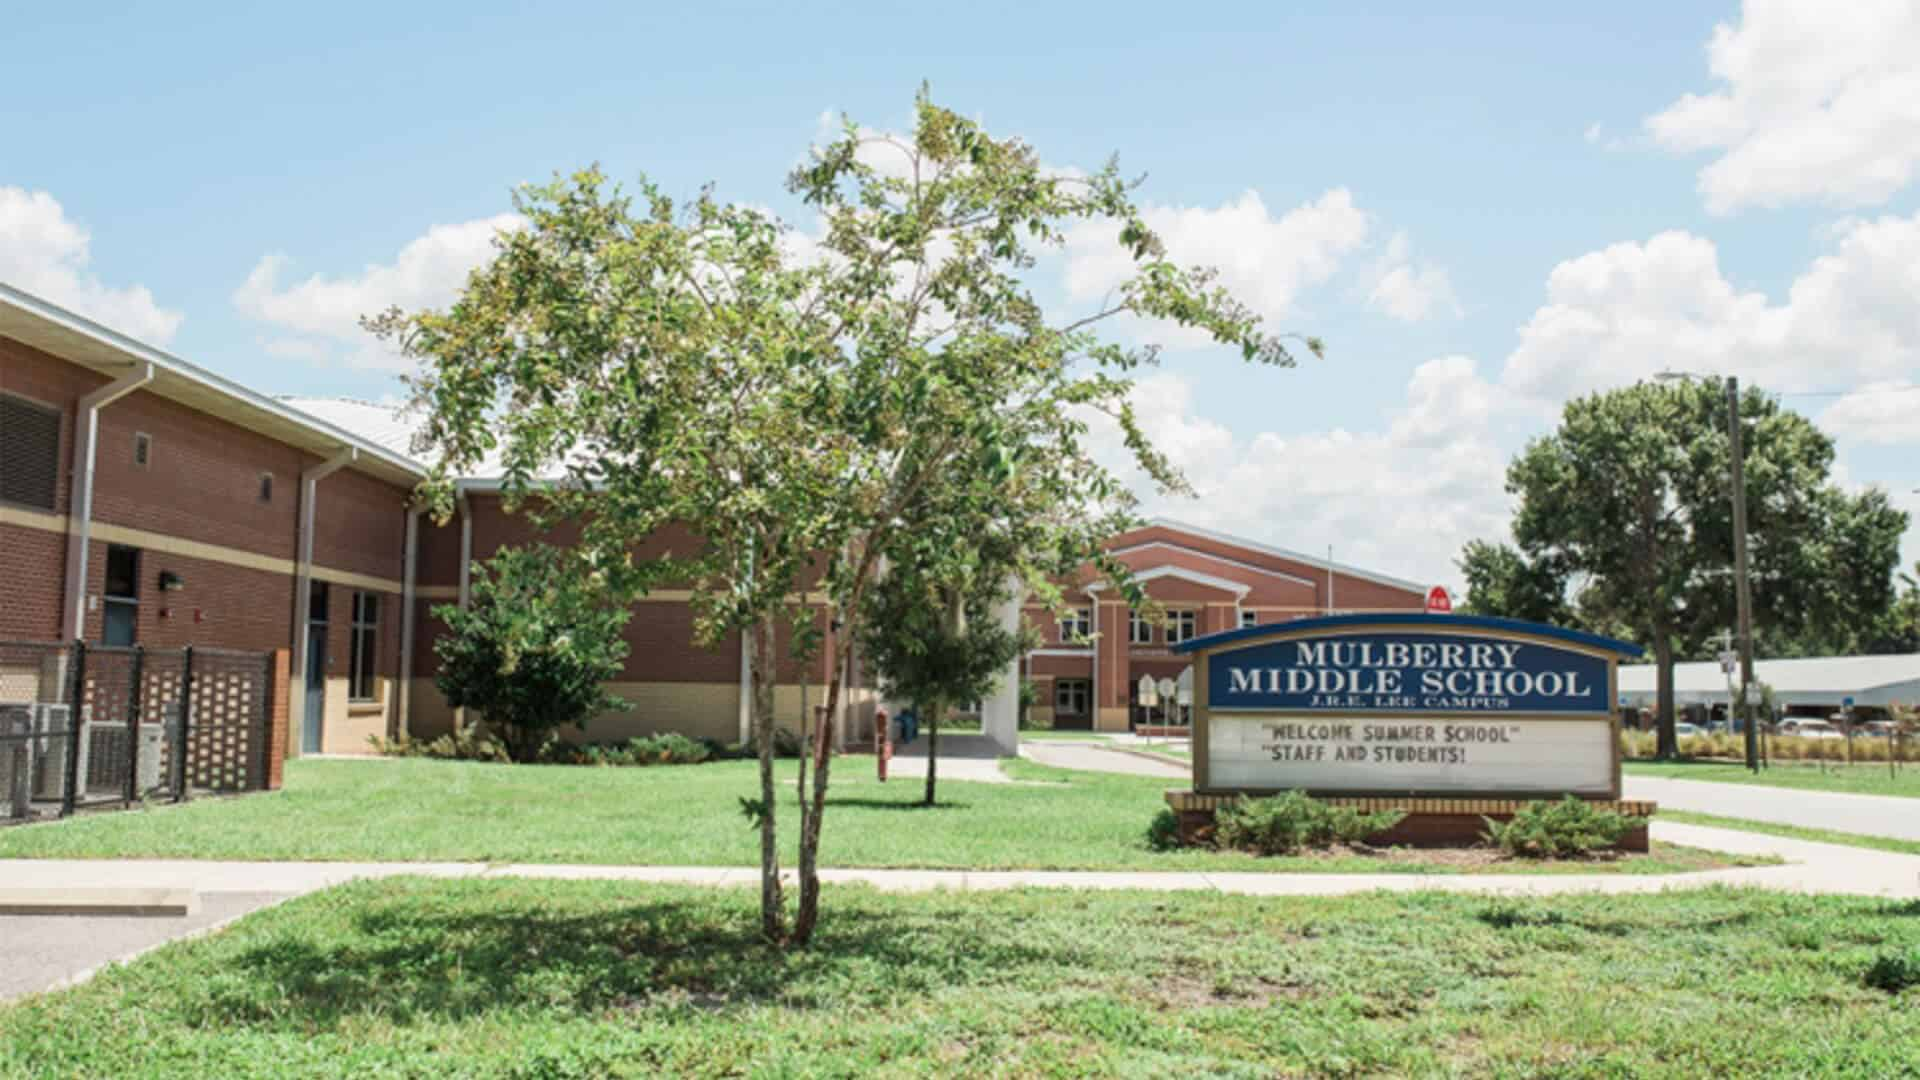 Mulberry Middle School